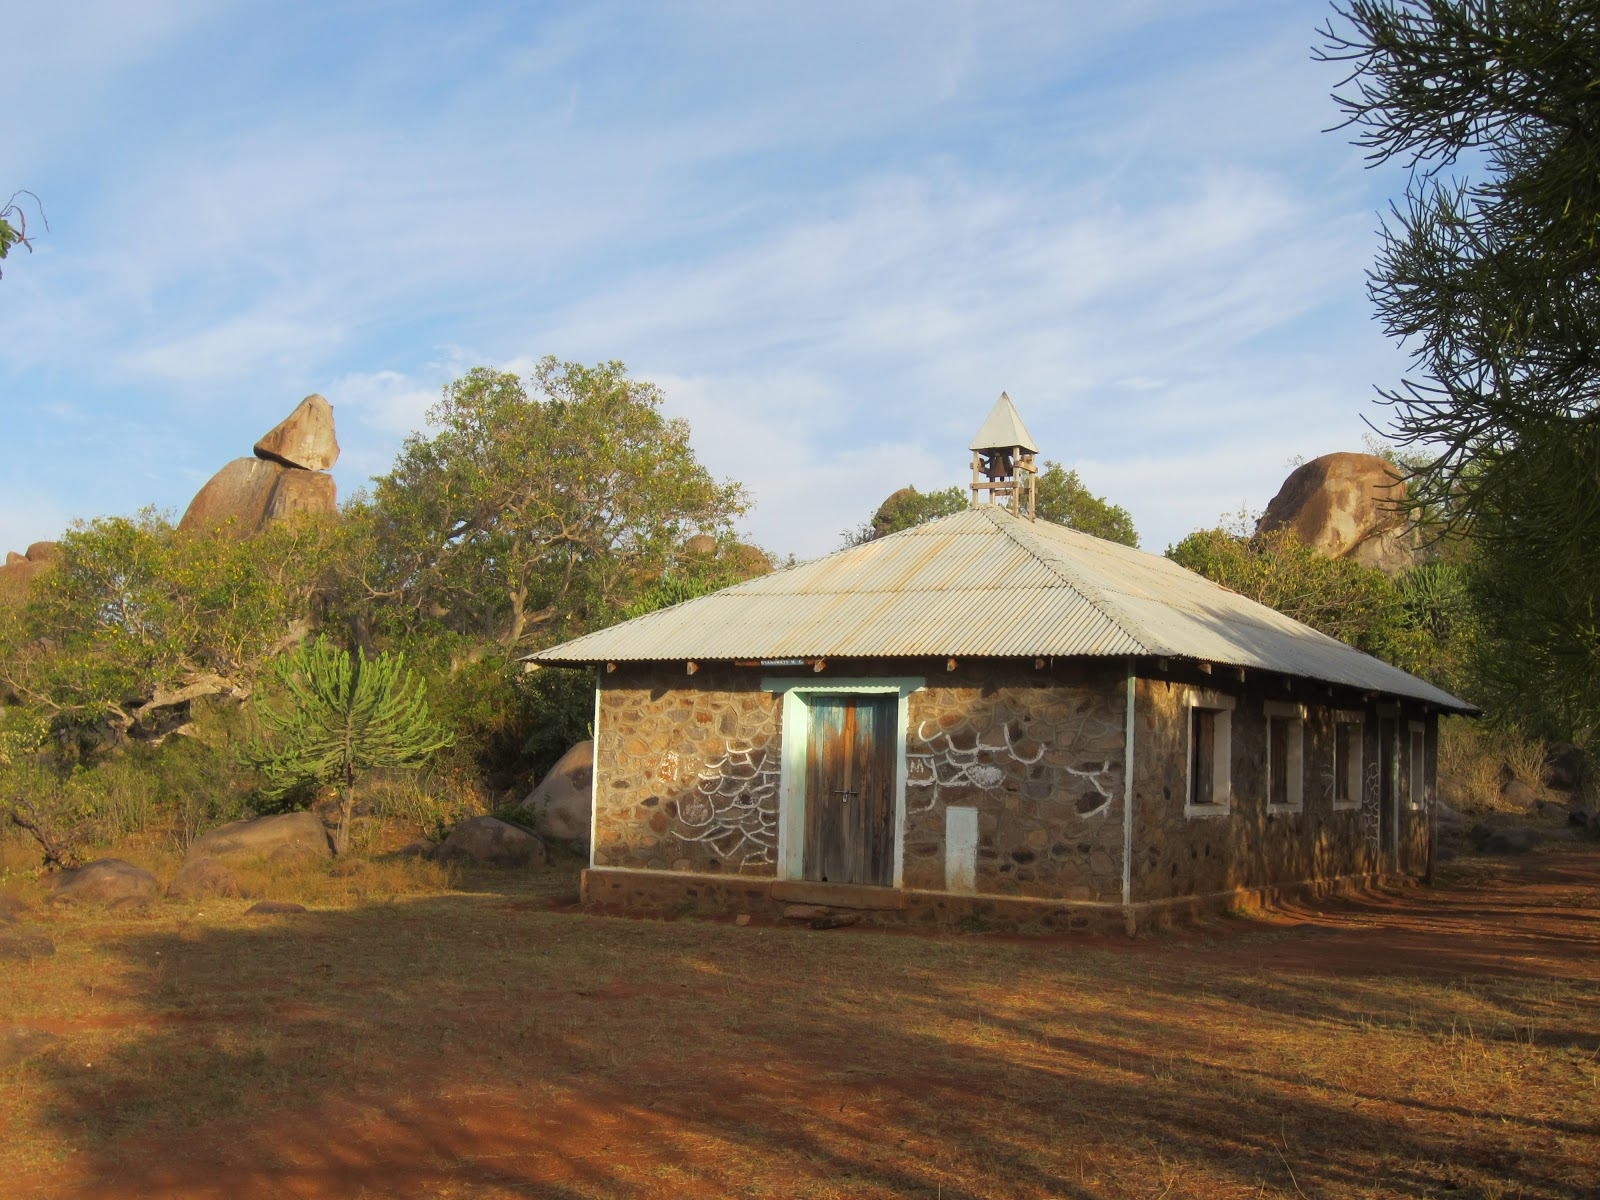 Early Churches in Kenya an Early Mennonite Church Near